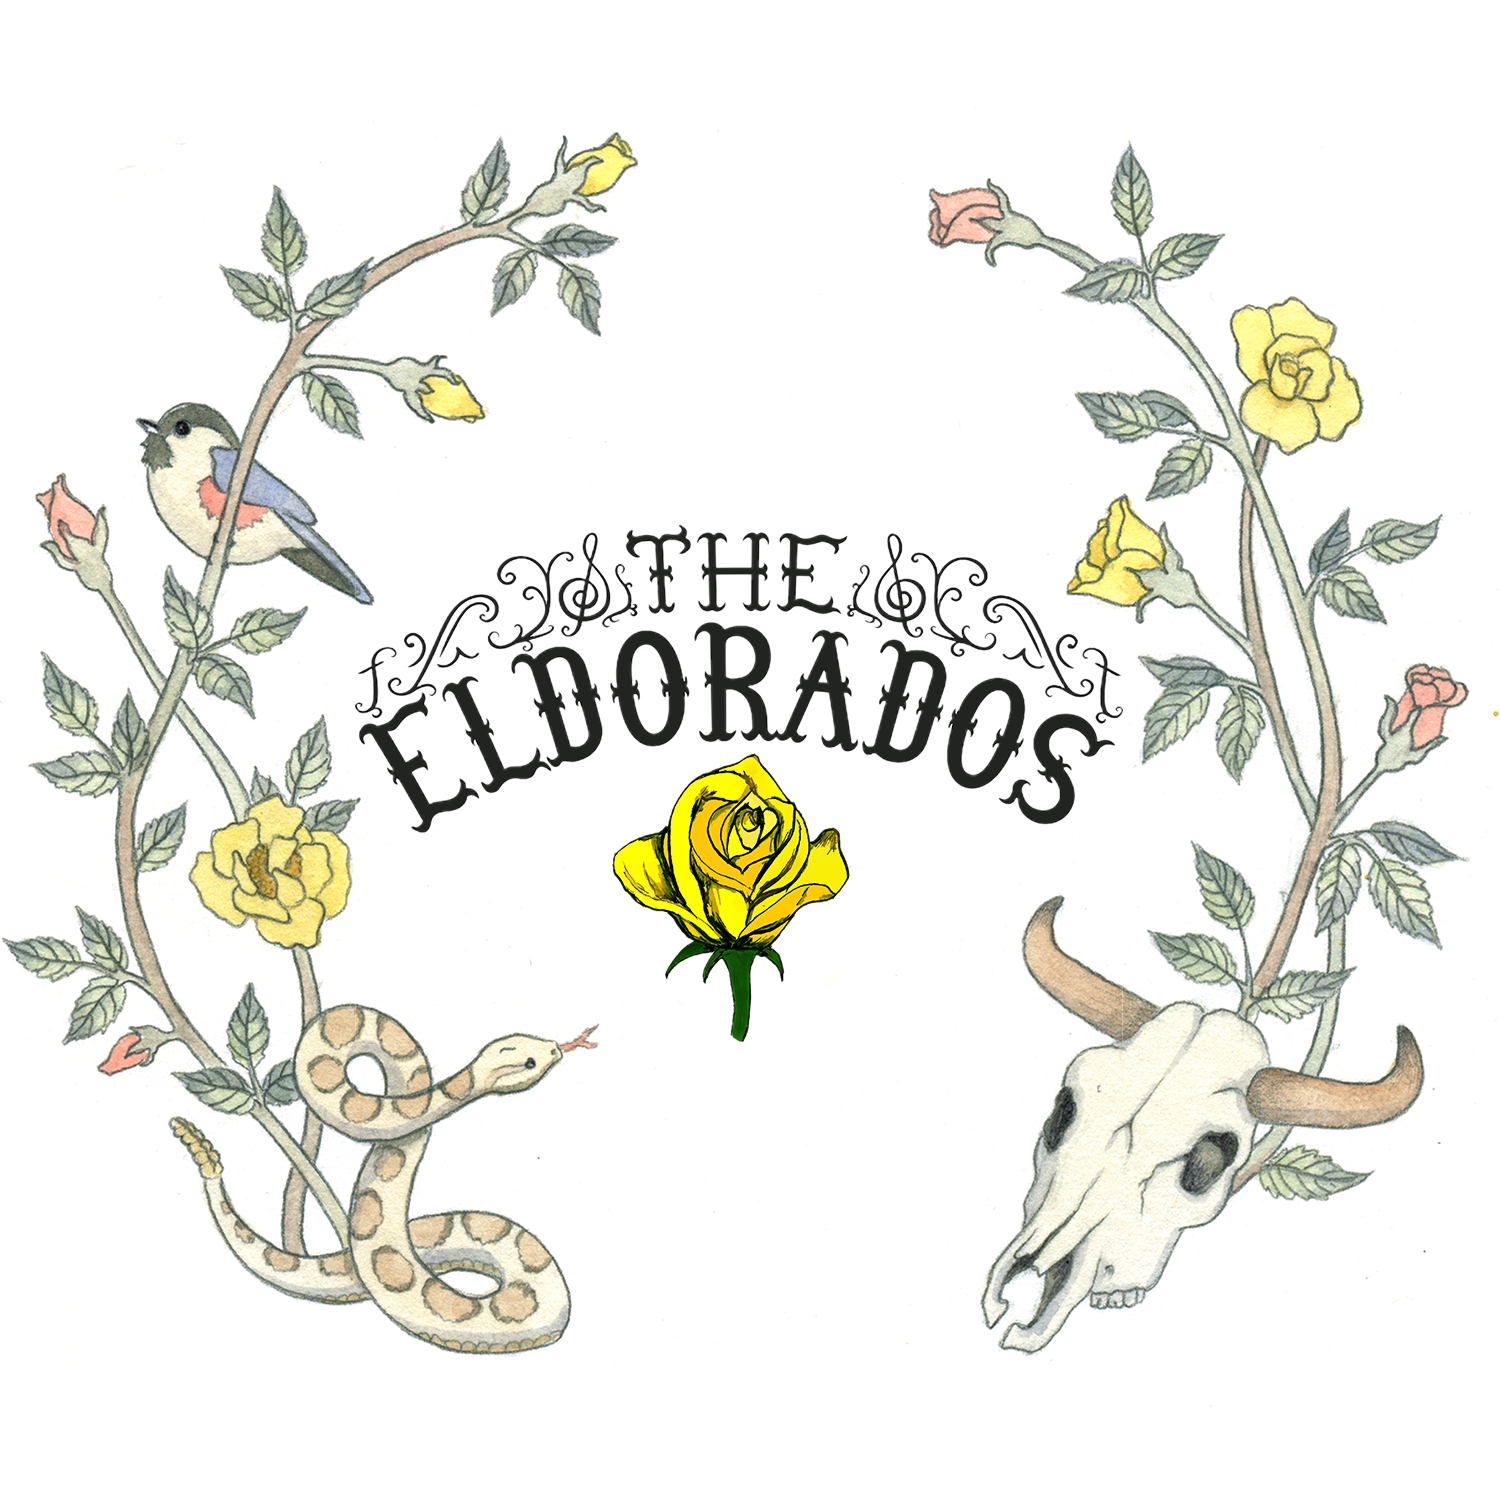 The Eldorados